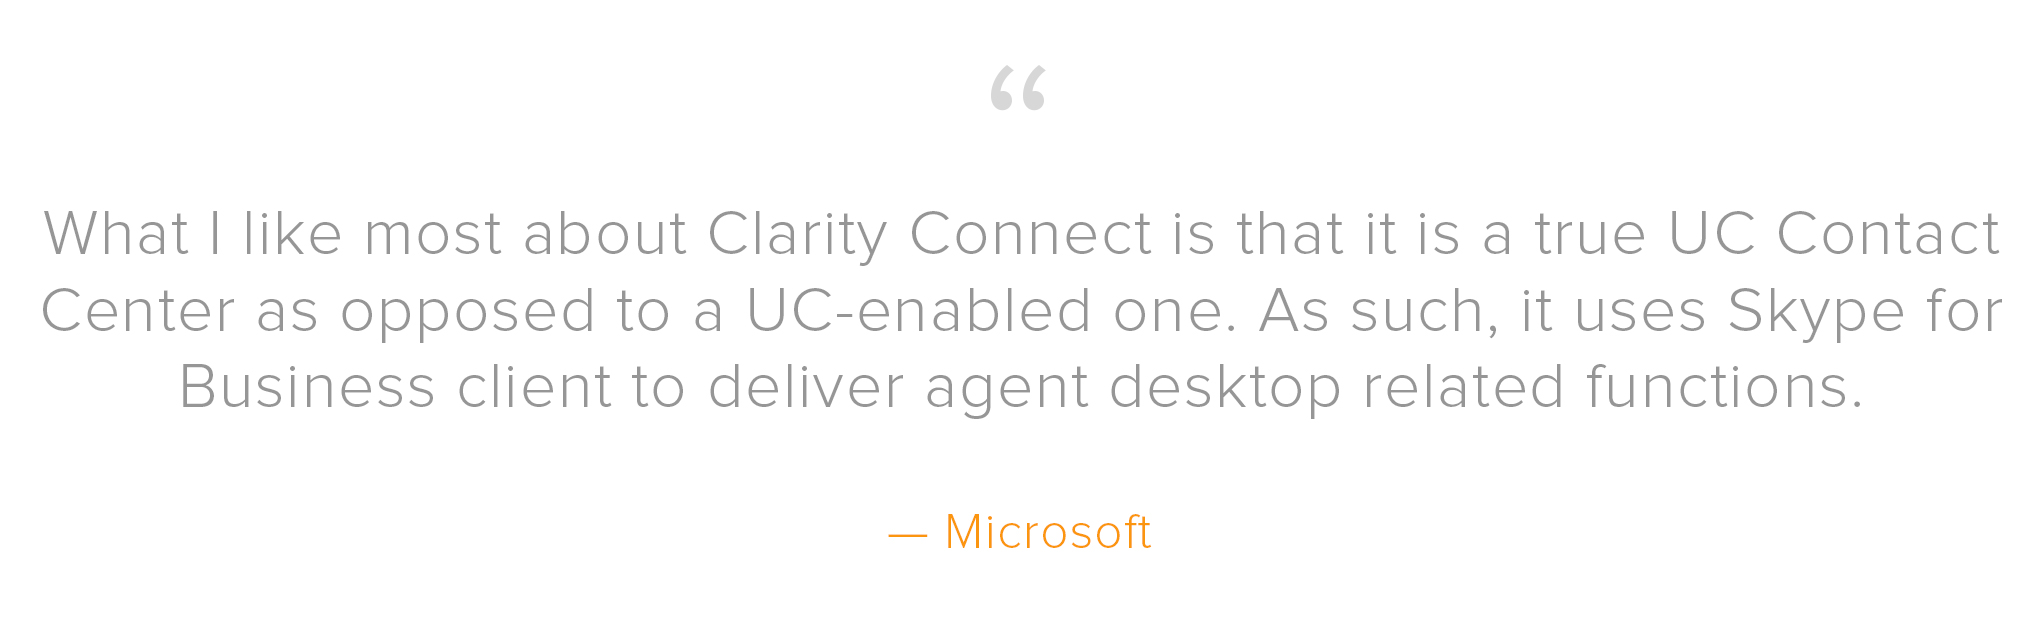 quote_microsoft.jpg